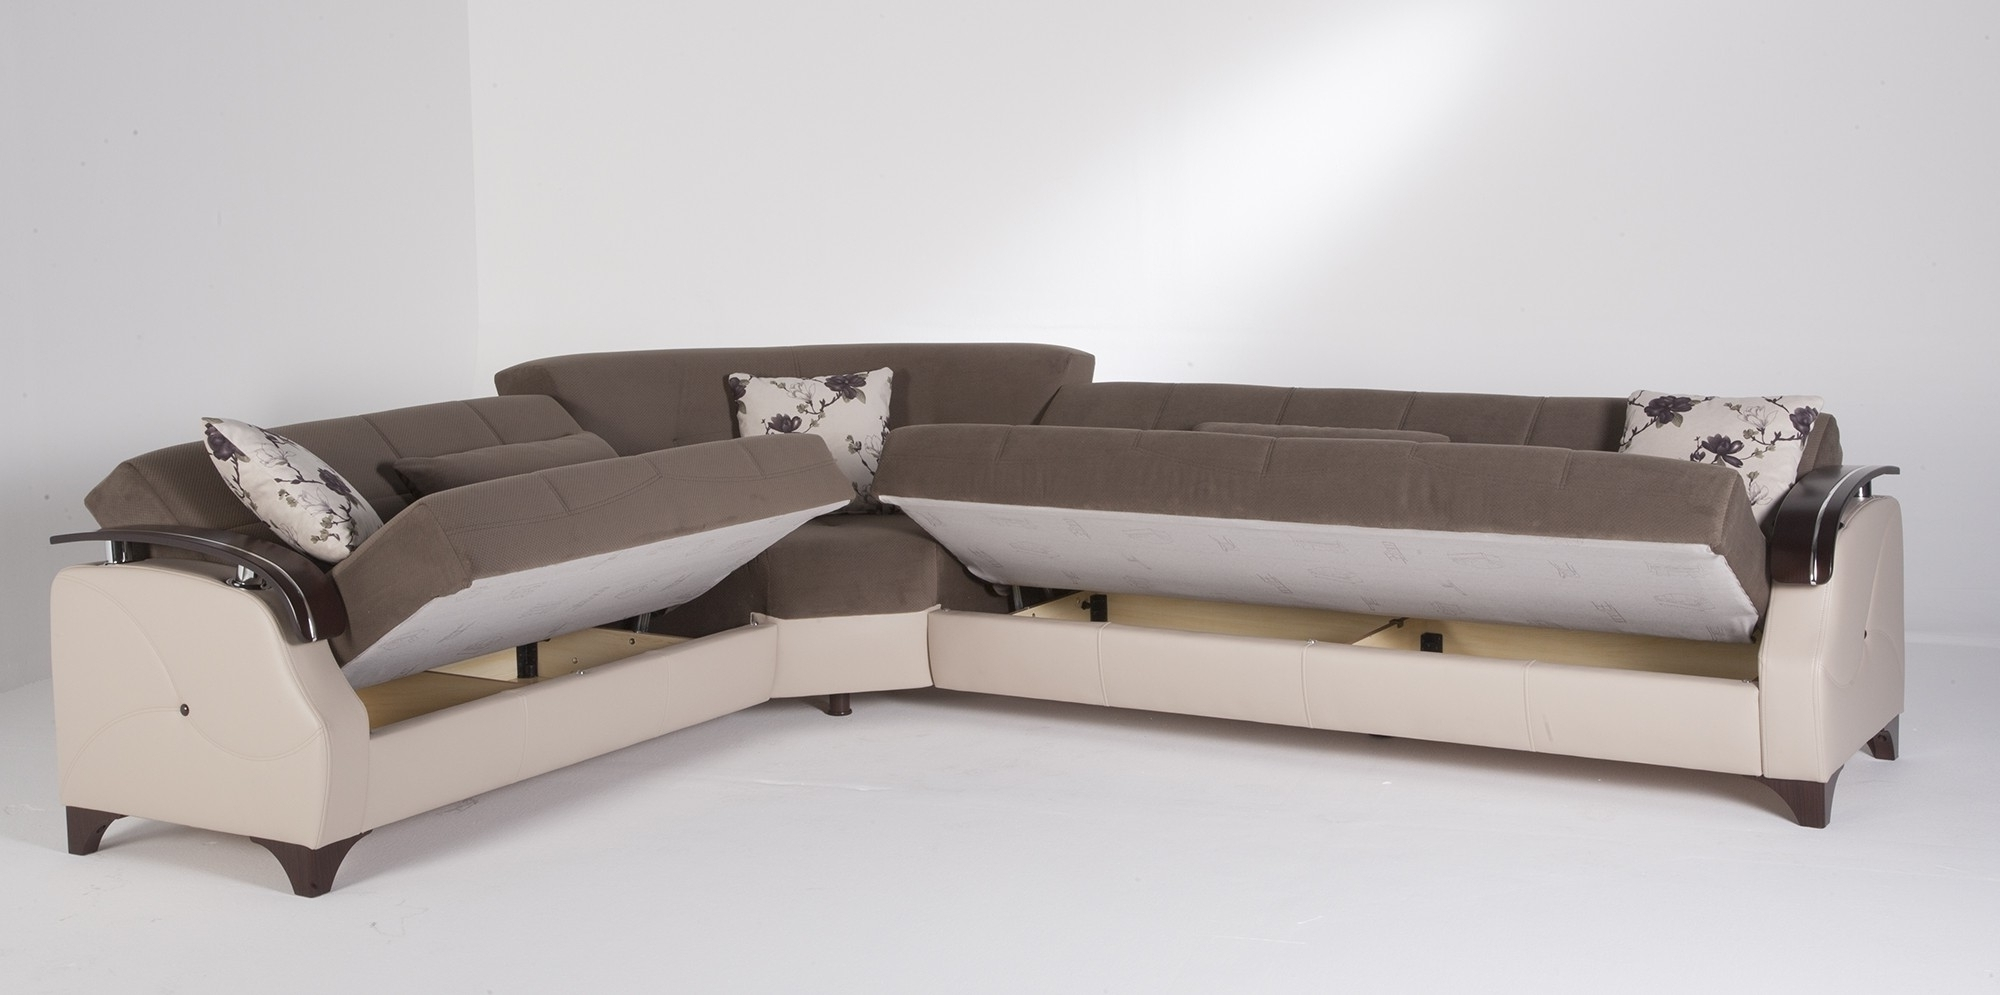 Famous Elegant And Exclusive Modern Sleeper Sofa — The Home Redesign Intended For Sectional Sleeper Sofas With Chaise (View 15 of 15)